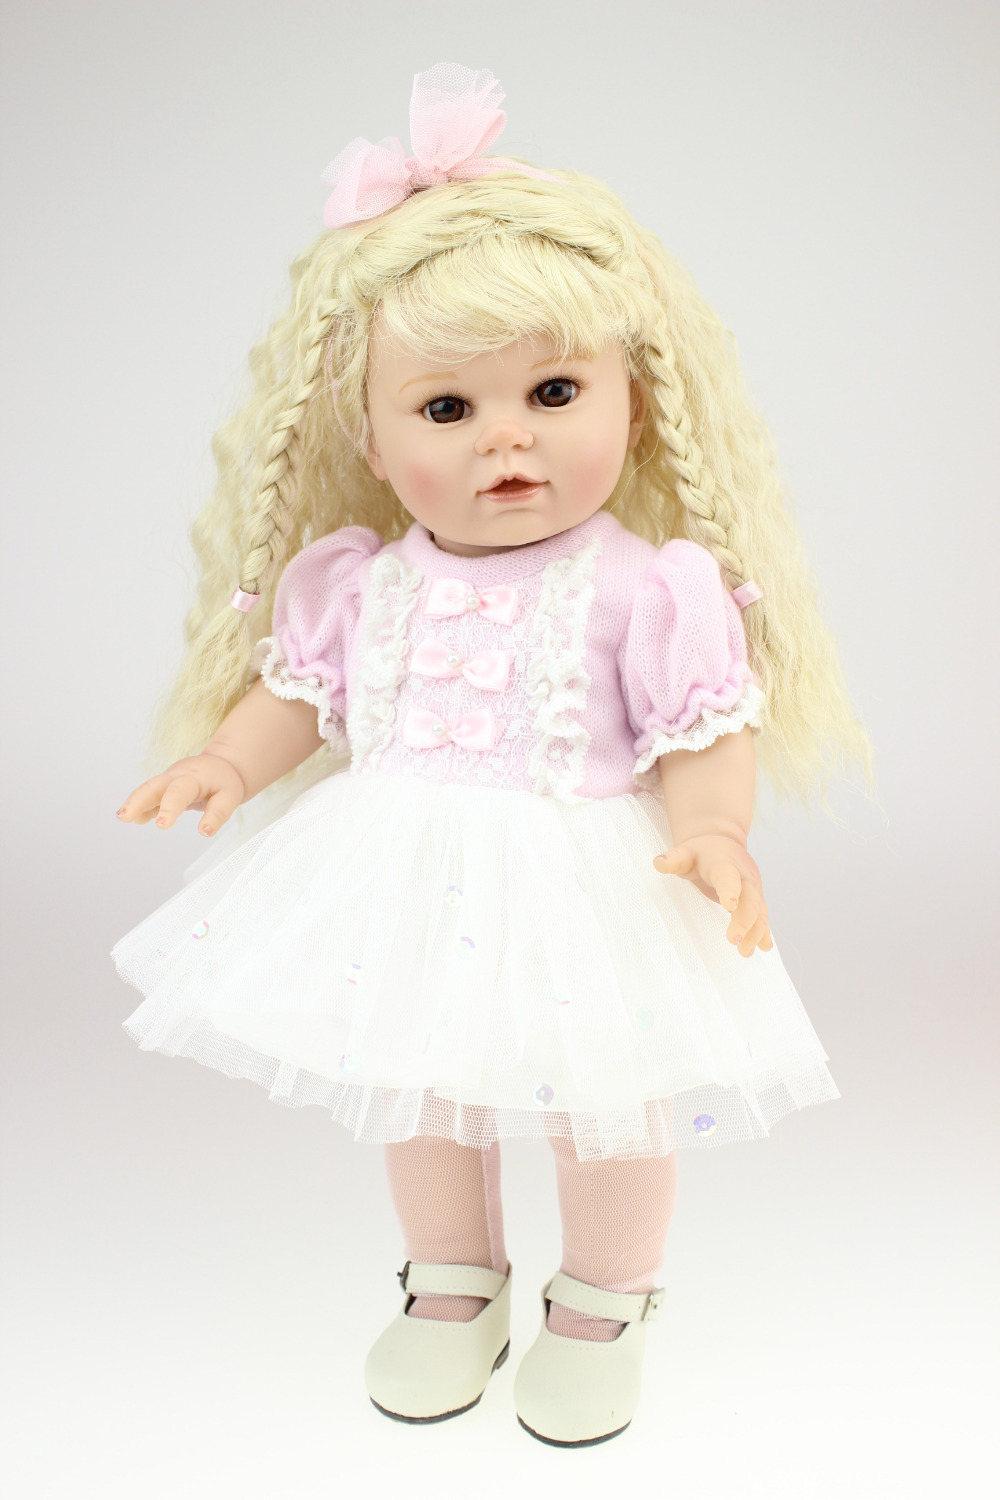 40cm Vinyl Baby Home Doll American Girls Doll Silicone Newborn Baby Doll The Most Popular Girls